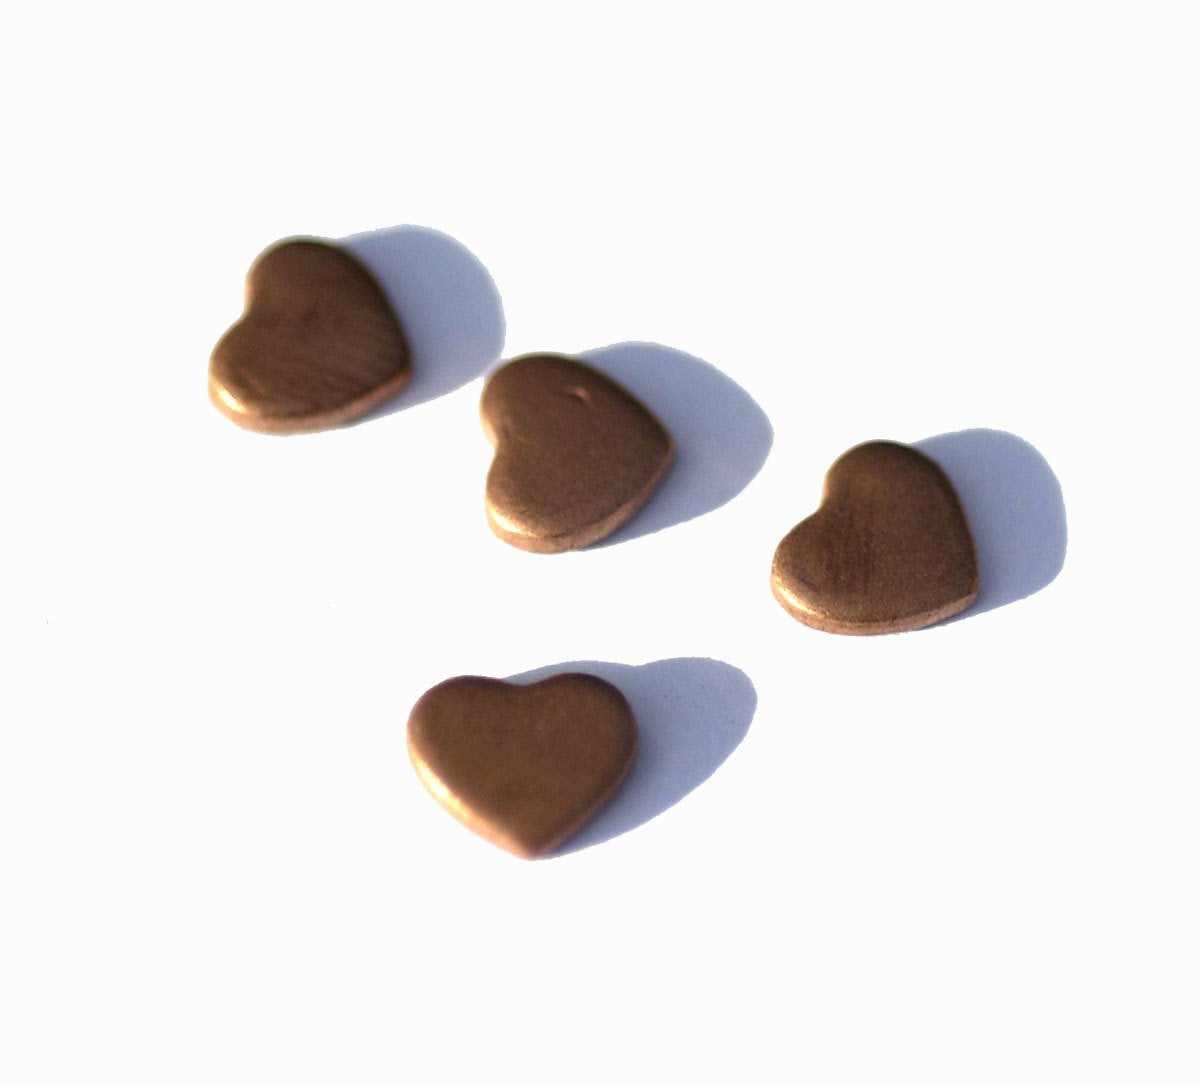 Buy Copper Heart Classic 6mm x 5mm Heart Blanks Cutout for Enameling Stamping Texturing Variety of Metals online